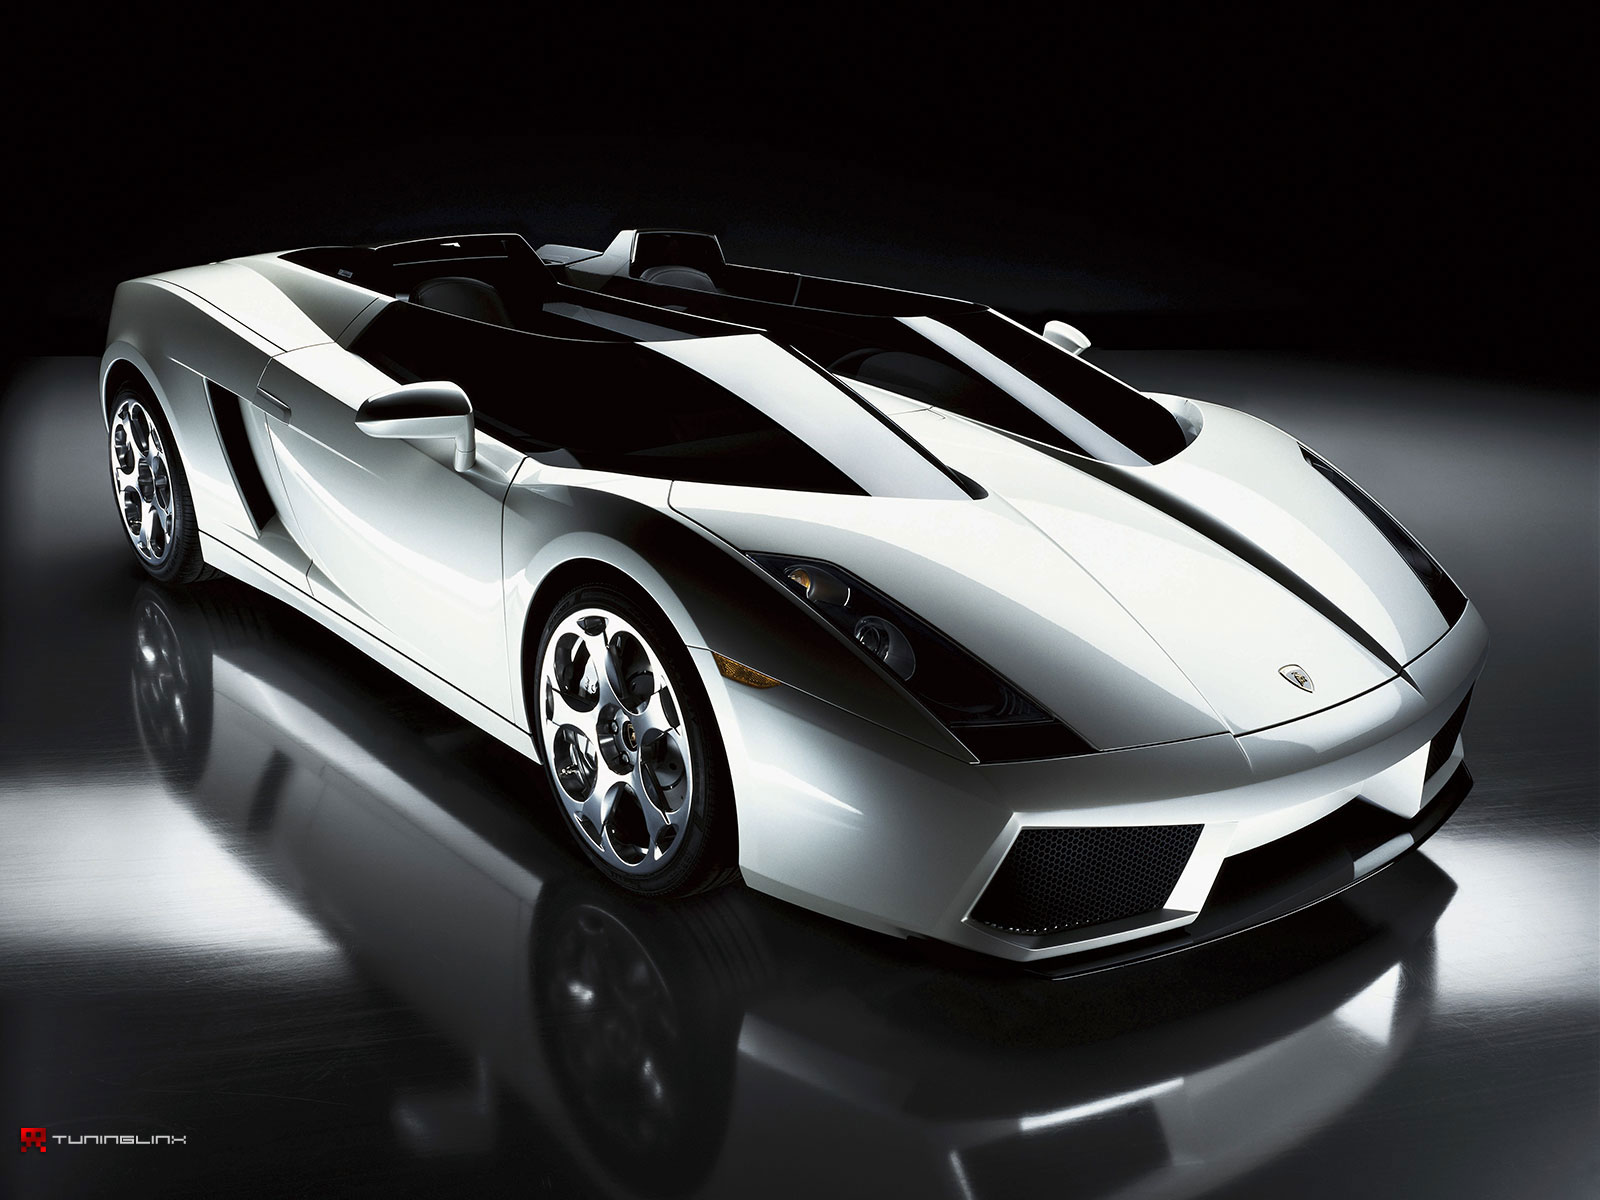 Lamborghini Car Wallpapers HD Nice Wallpapers 1600x1200